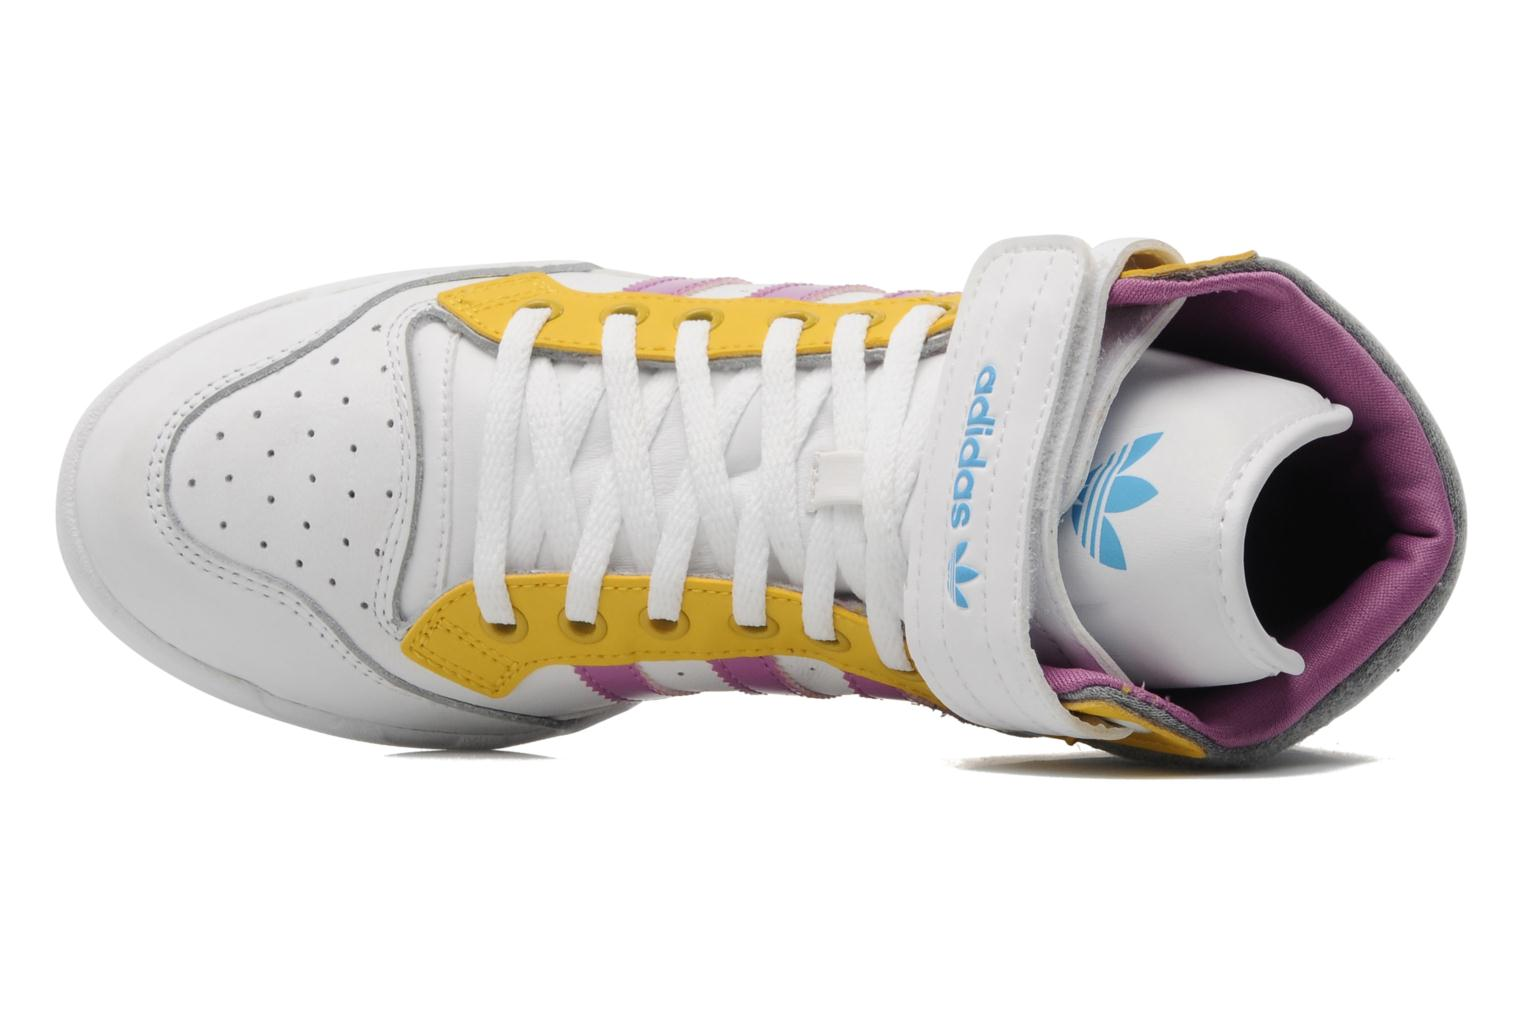 Centenia Hi W Running White Ftw / Joy Orchid S13 / Tribe Yellow S14